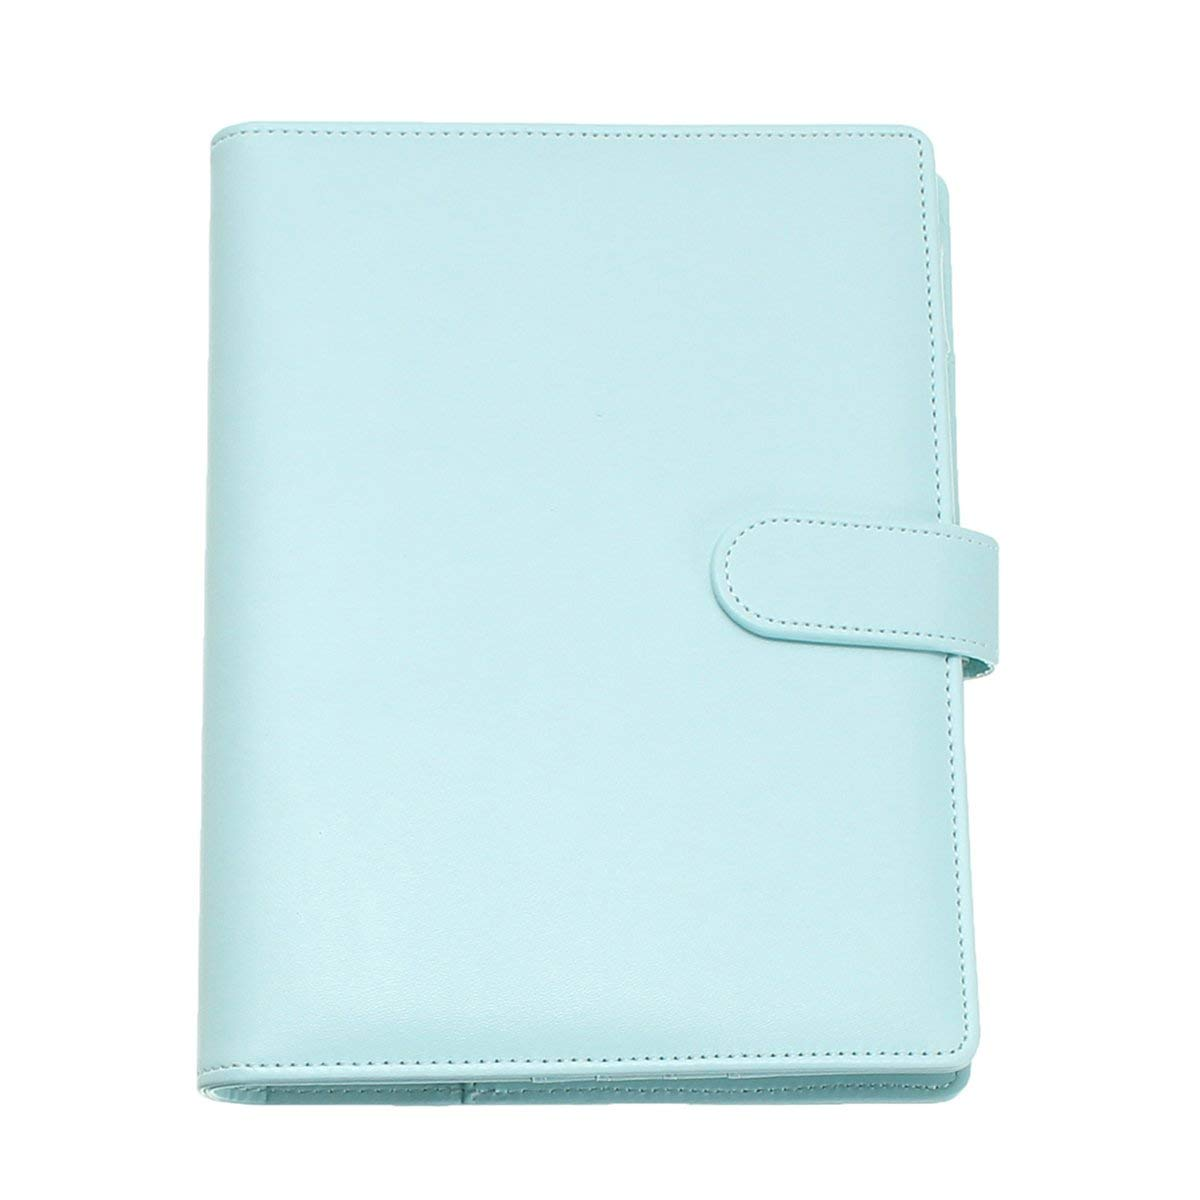 DAVITU A6 Spiral Notebook Stationery For Office School Personal Agenda Organizer Diary Planner Gift - (Color: Blue) - Stationery Supplies - Paper & Notebooks